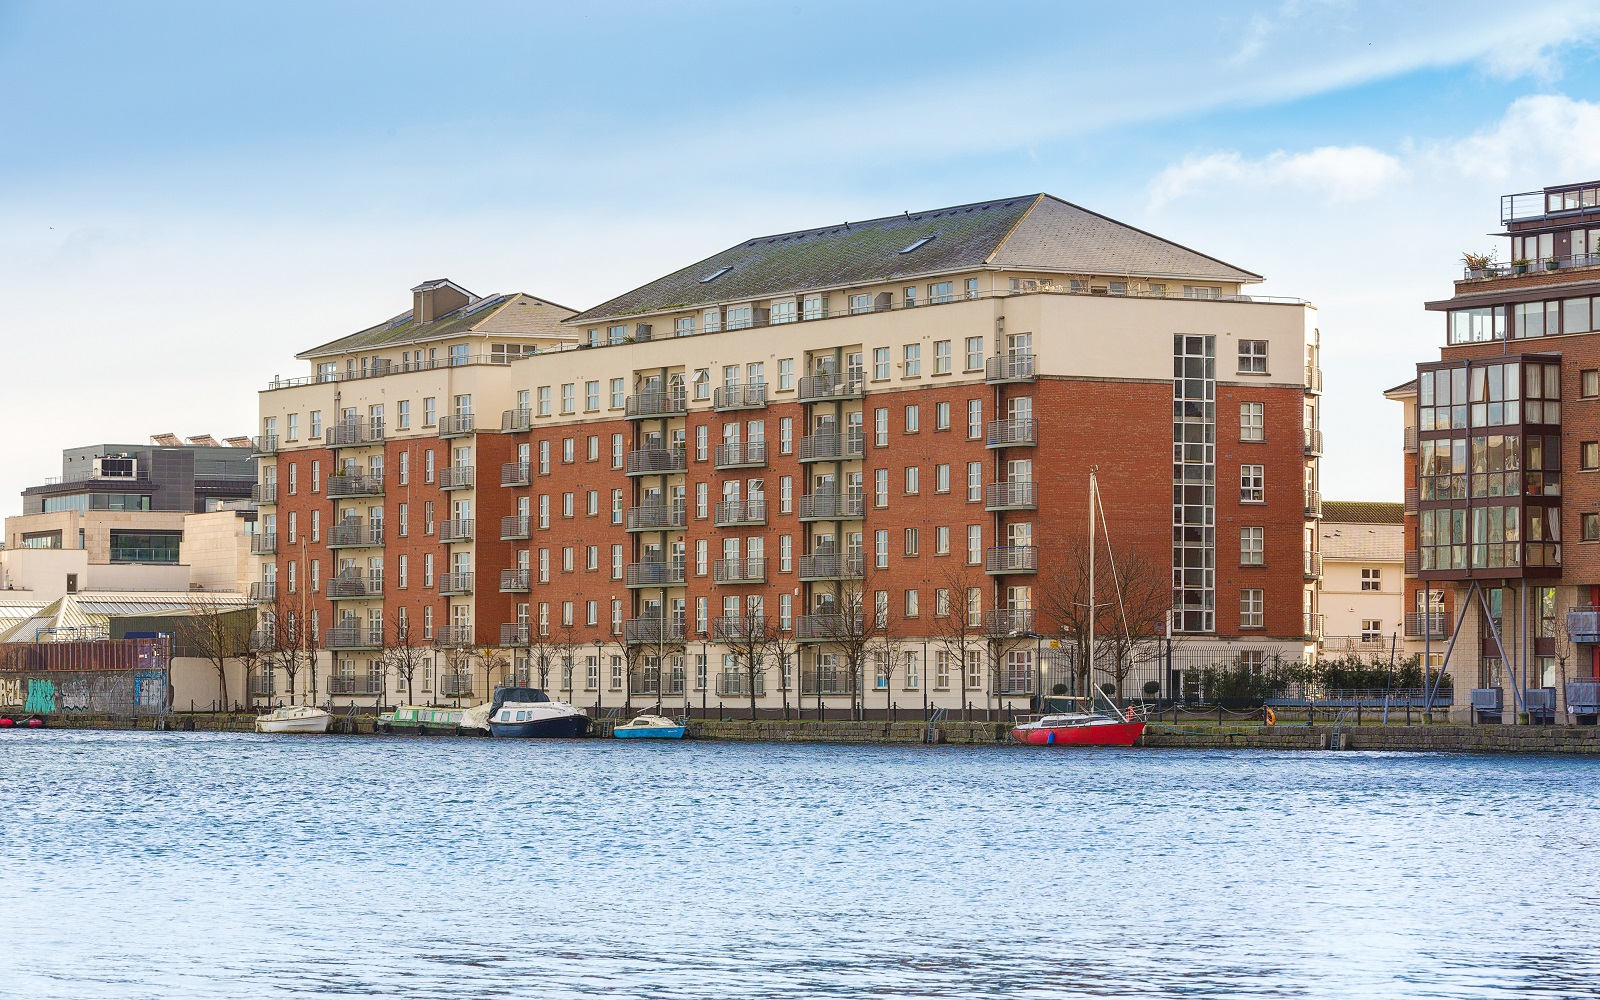 185 The Waterside, Charlotte Quay, Grand Canal Dock, Dublin 4